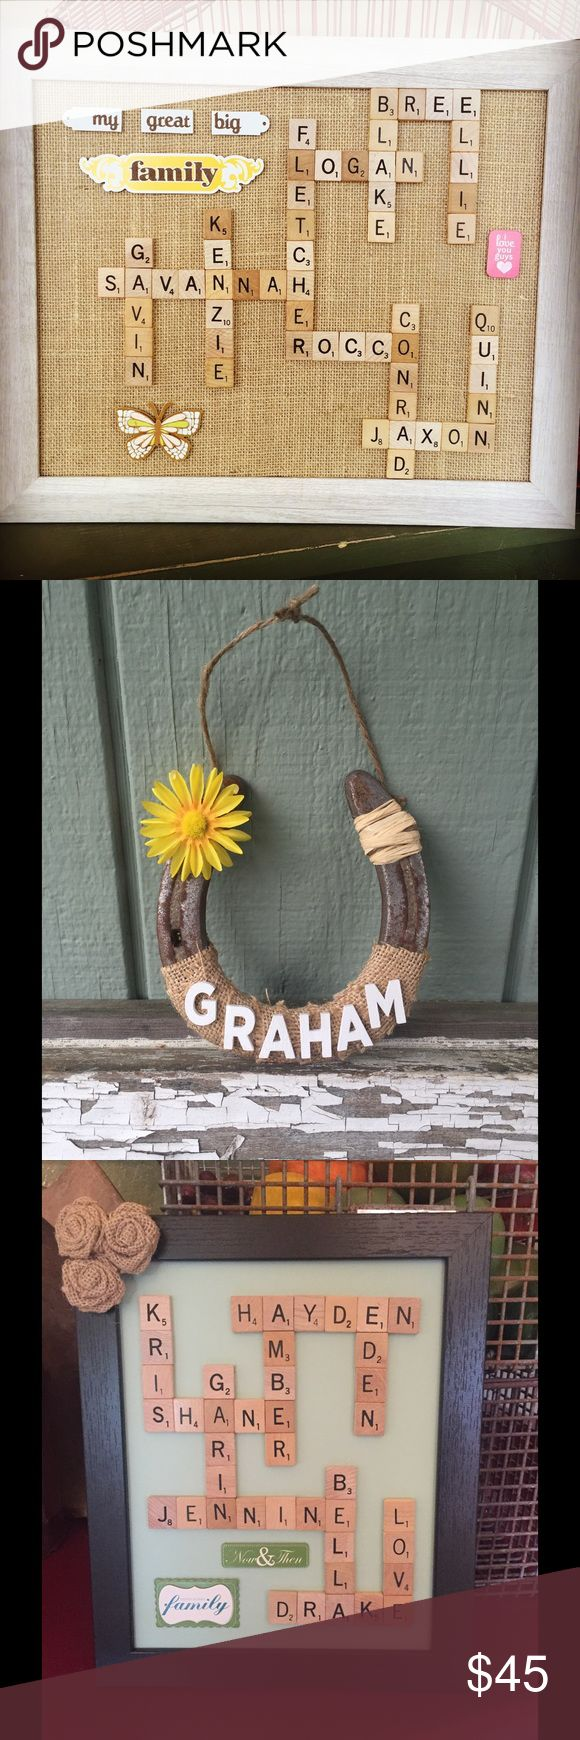 """Homemade gifts FOR SALE-- Family scrabble 8X10 frames: $35 Family scrabble 11X14 frames: $45 Wall/Standing 9"""" tall Letters: $25 Horseshoes, 4-5"""" tall/wide: $20 Anniversary/new home/teacher/ dry erase 5X7 frames: $20 Button Art 8X10 Frames: $30 Penny Balloon 8X10 Frames: $30  These make amazing gifts for Fathers Day, Graduation, Christmas, Birthdays, Children Decor, Baby Showers, Bridal Showers, Anniversary or Wedding Gifts, Wedding Decor, Gifts for Him, Gifts for Her, etc. Other"""